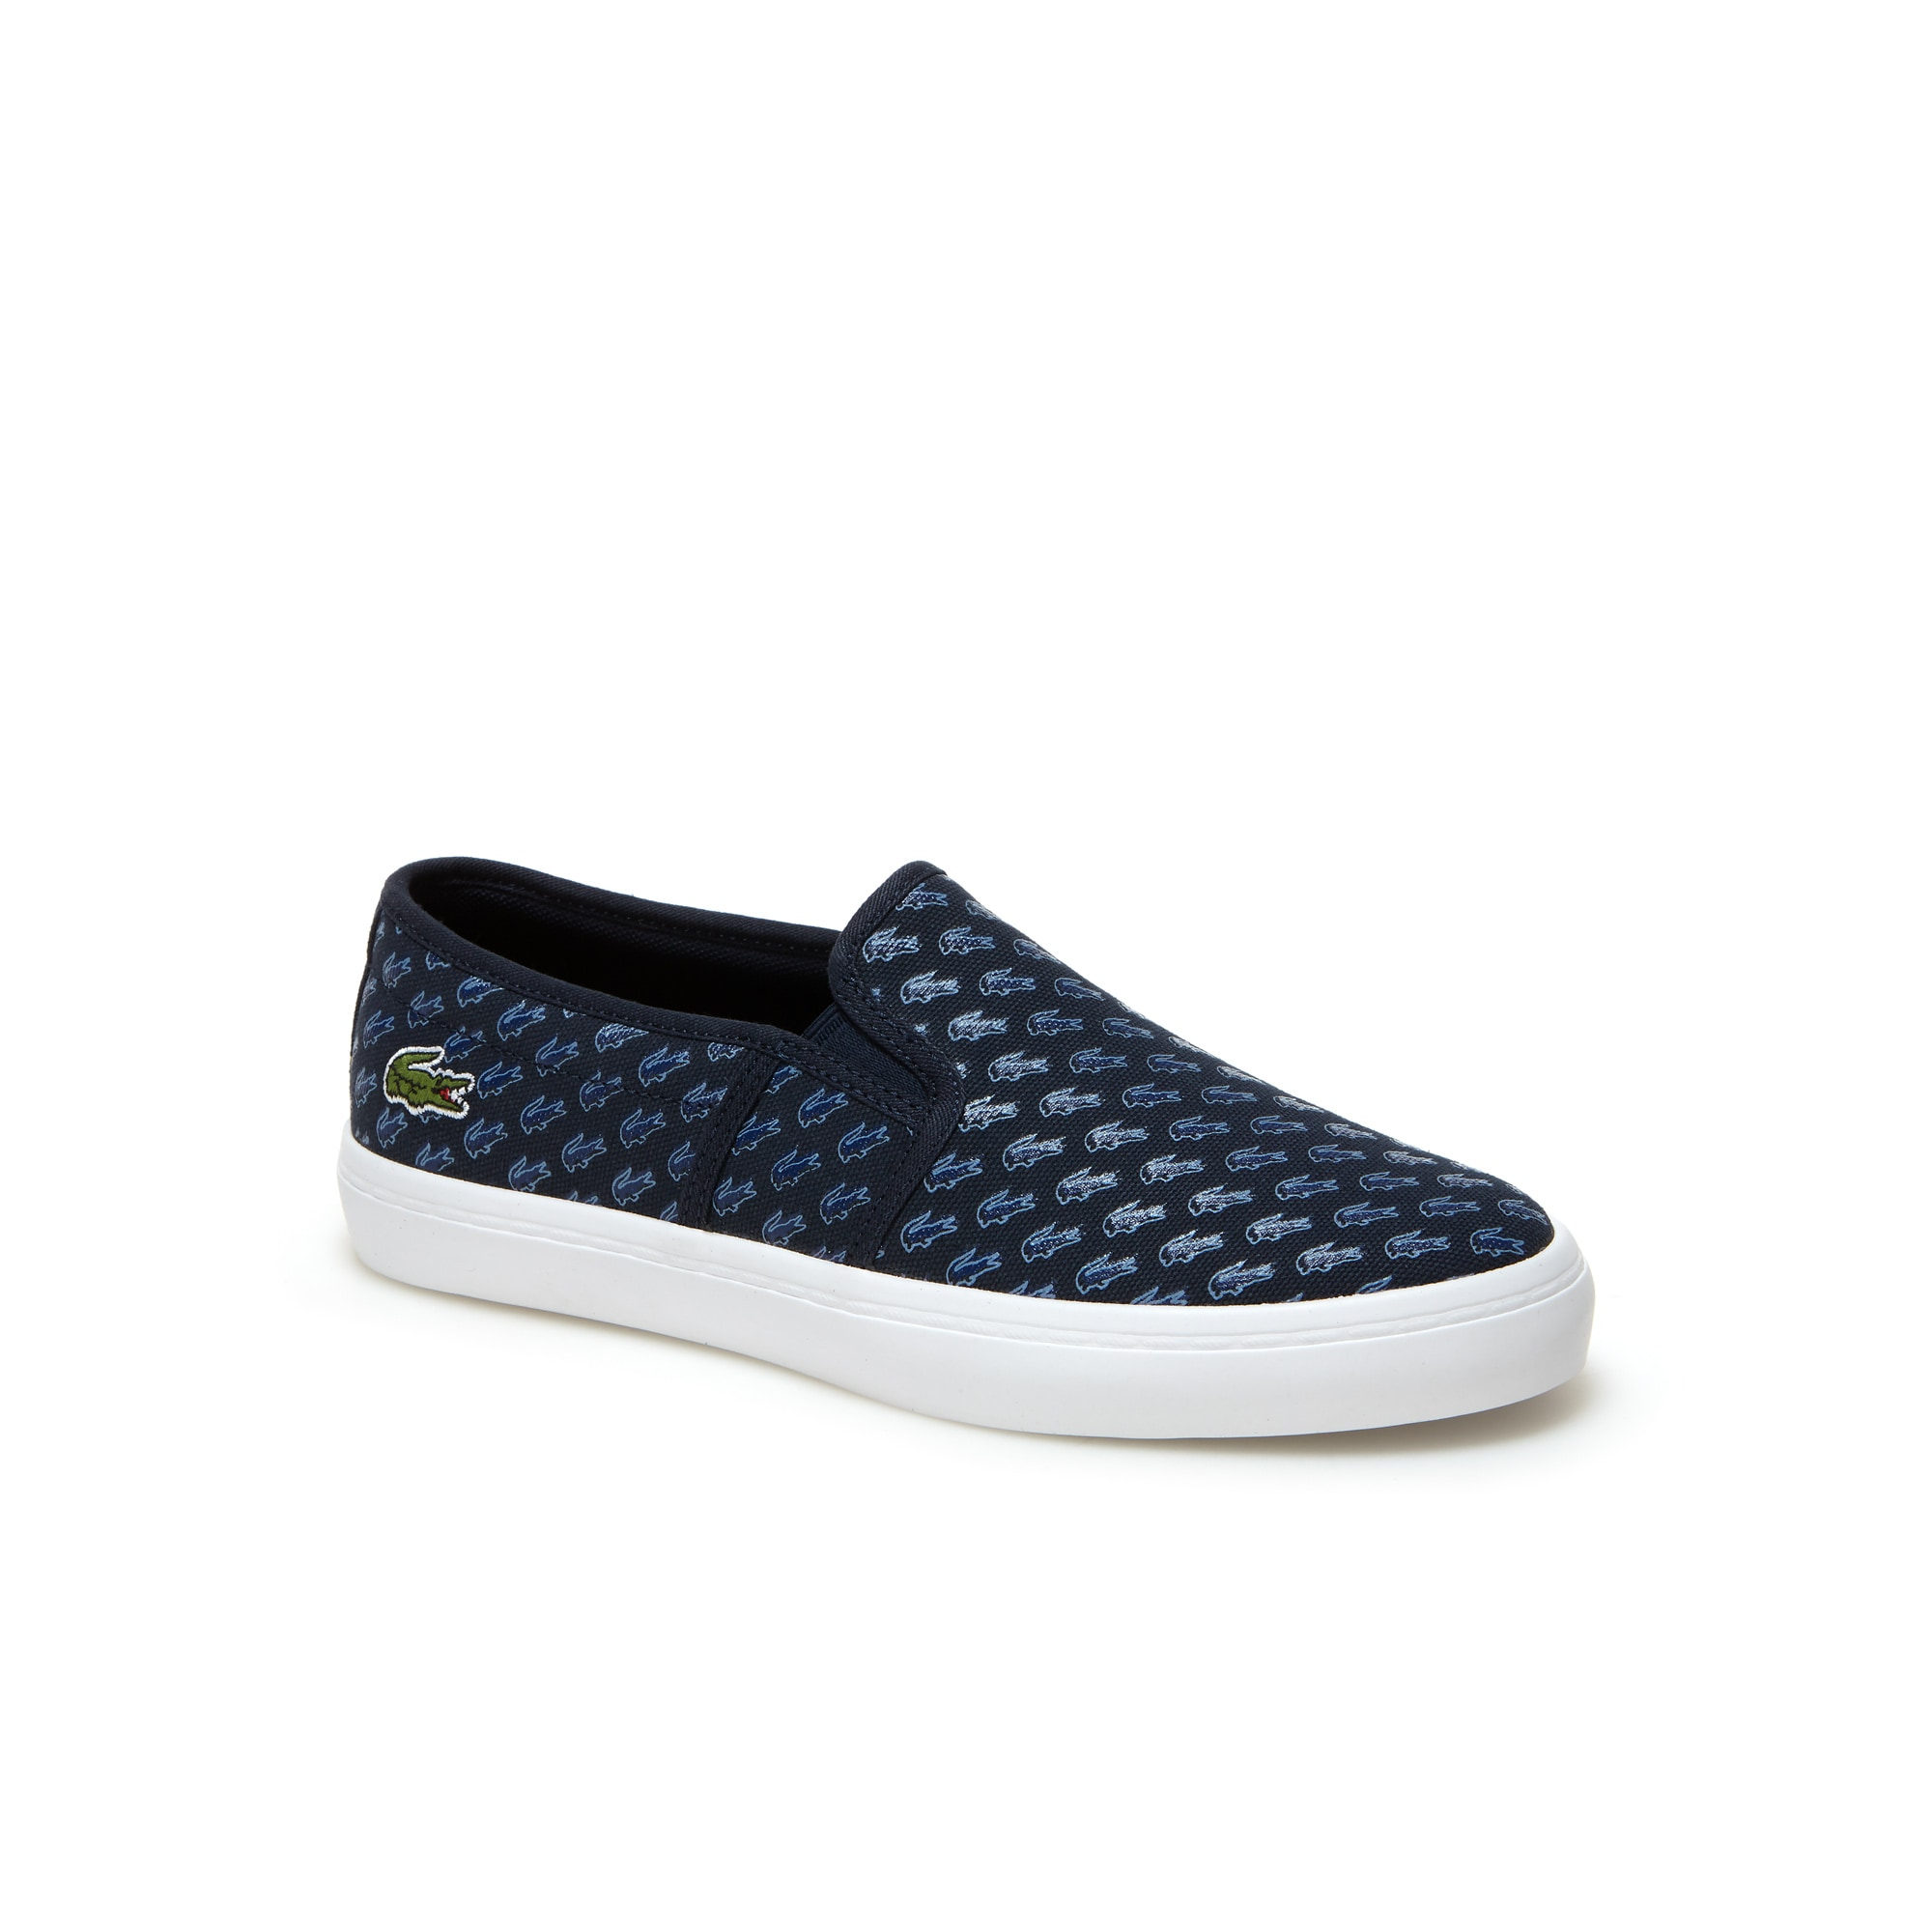 Damen-Slipper GAZON aus Canvas